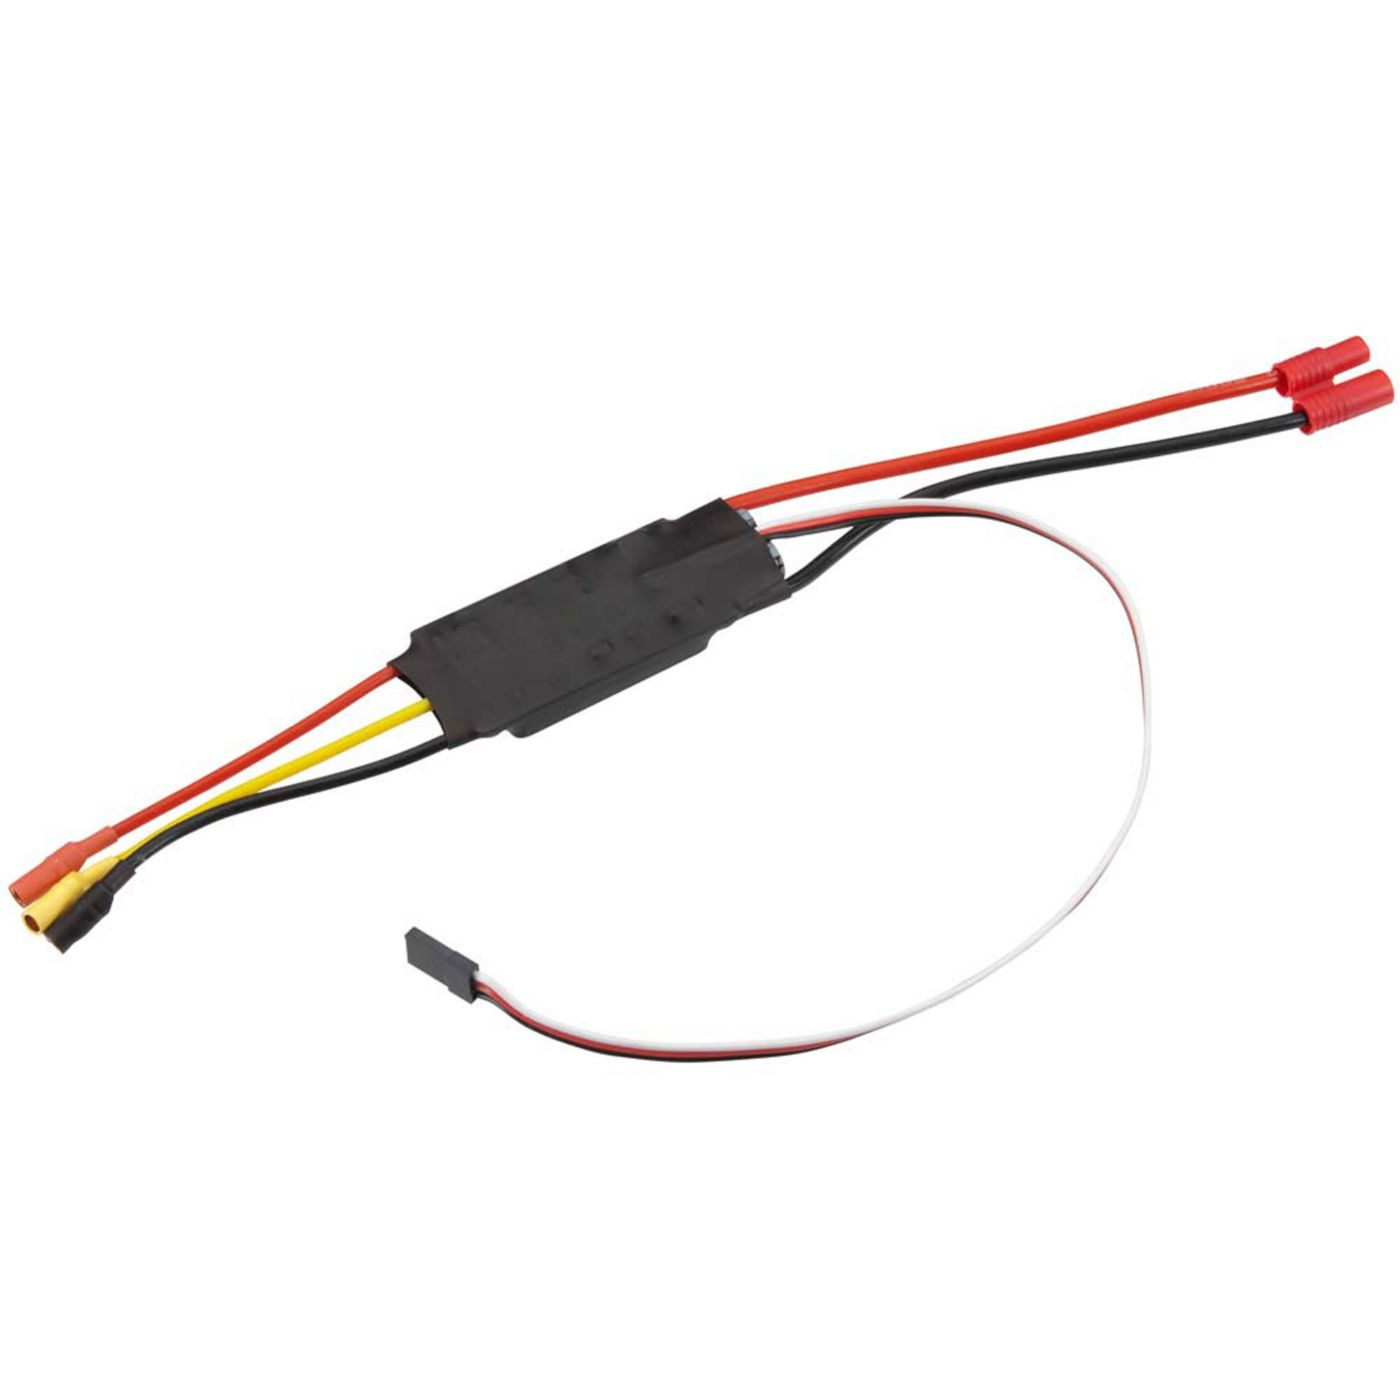 Flyzone 40 AMP ESC DHC-2 Beaver Select Scale